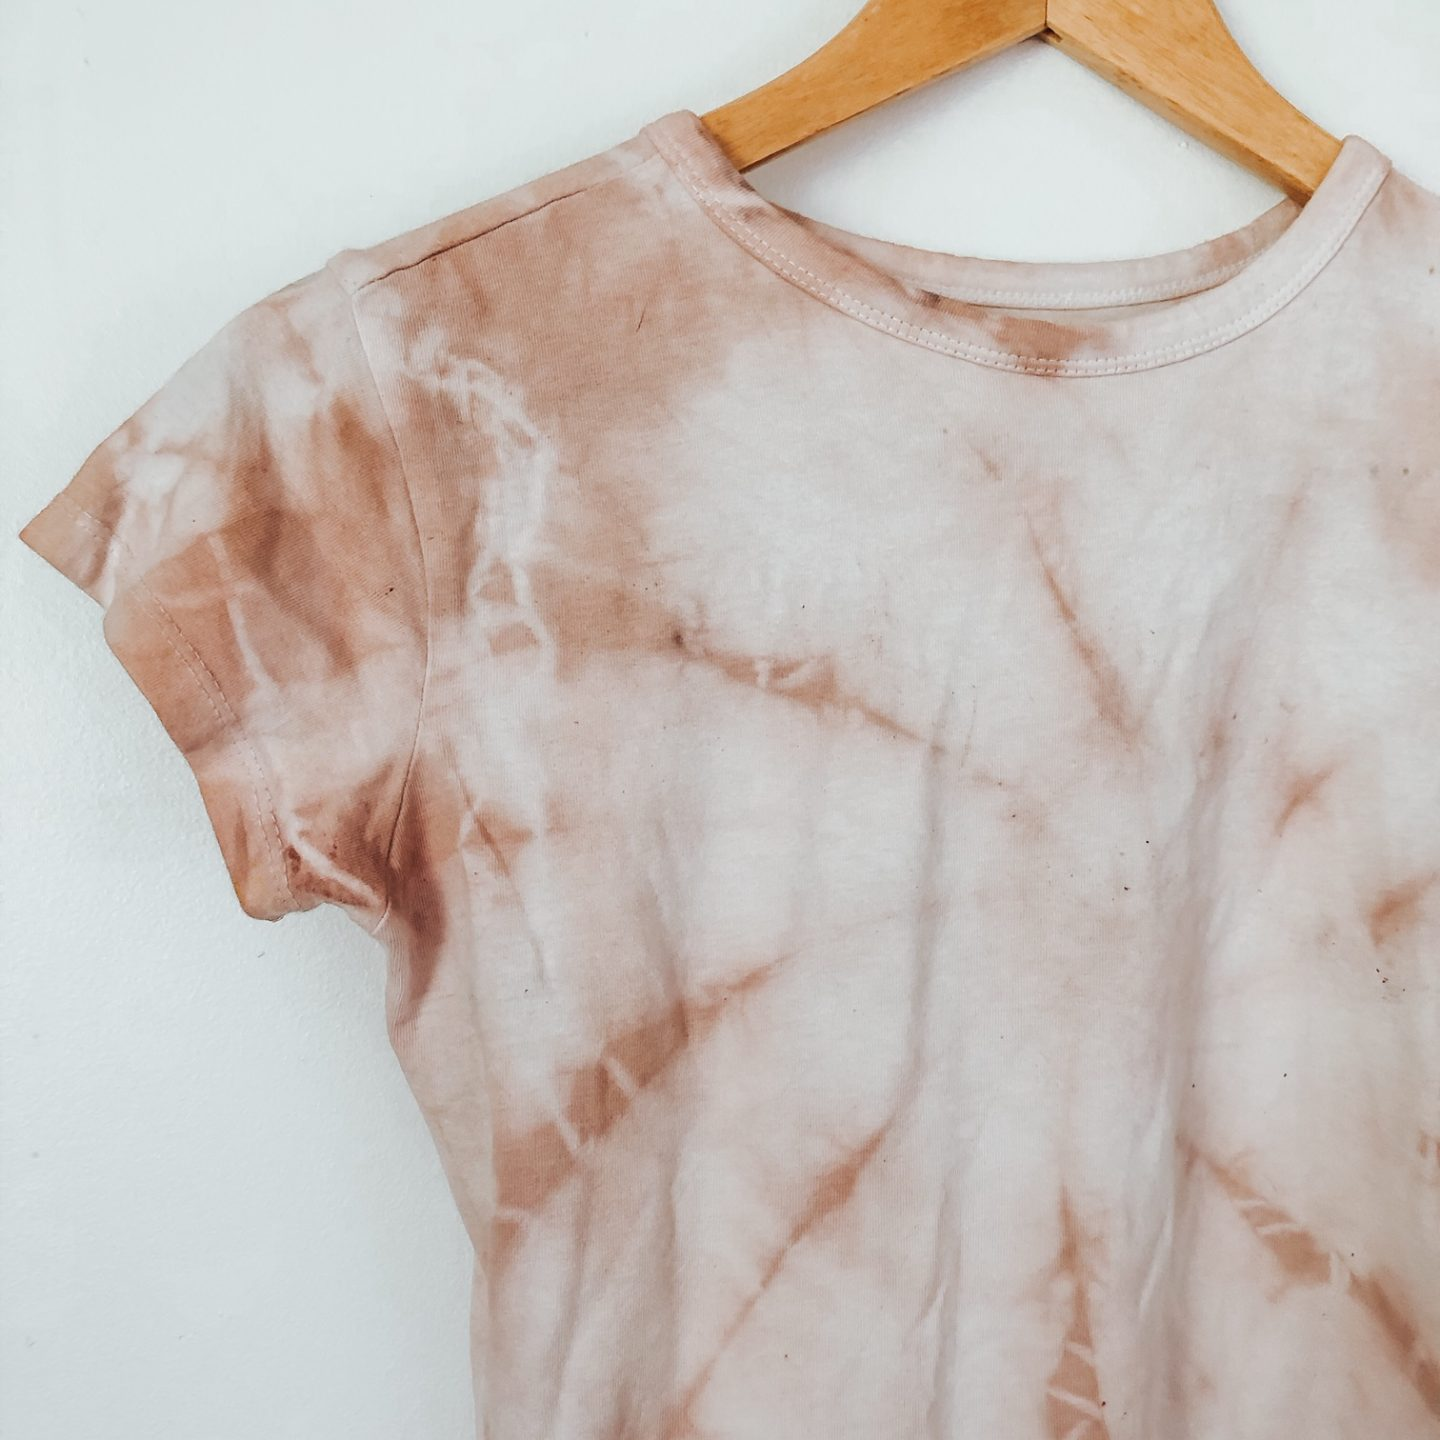 How to Naturally Dye Clothing with Food!